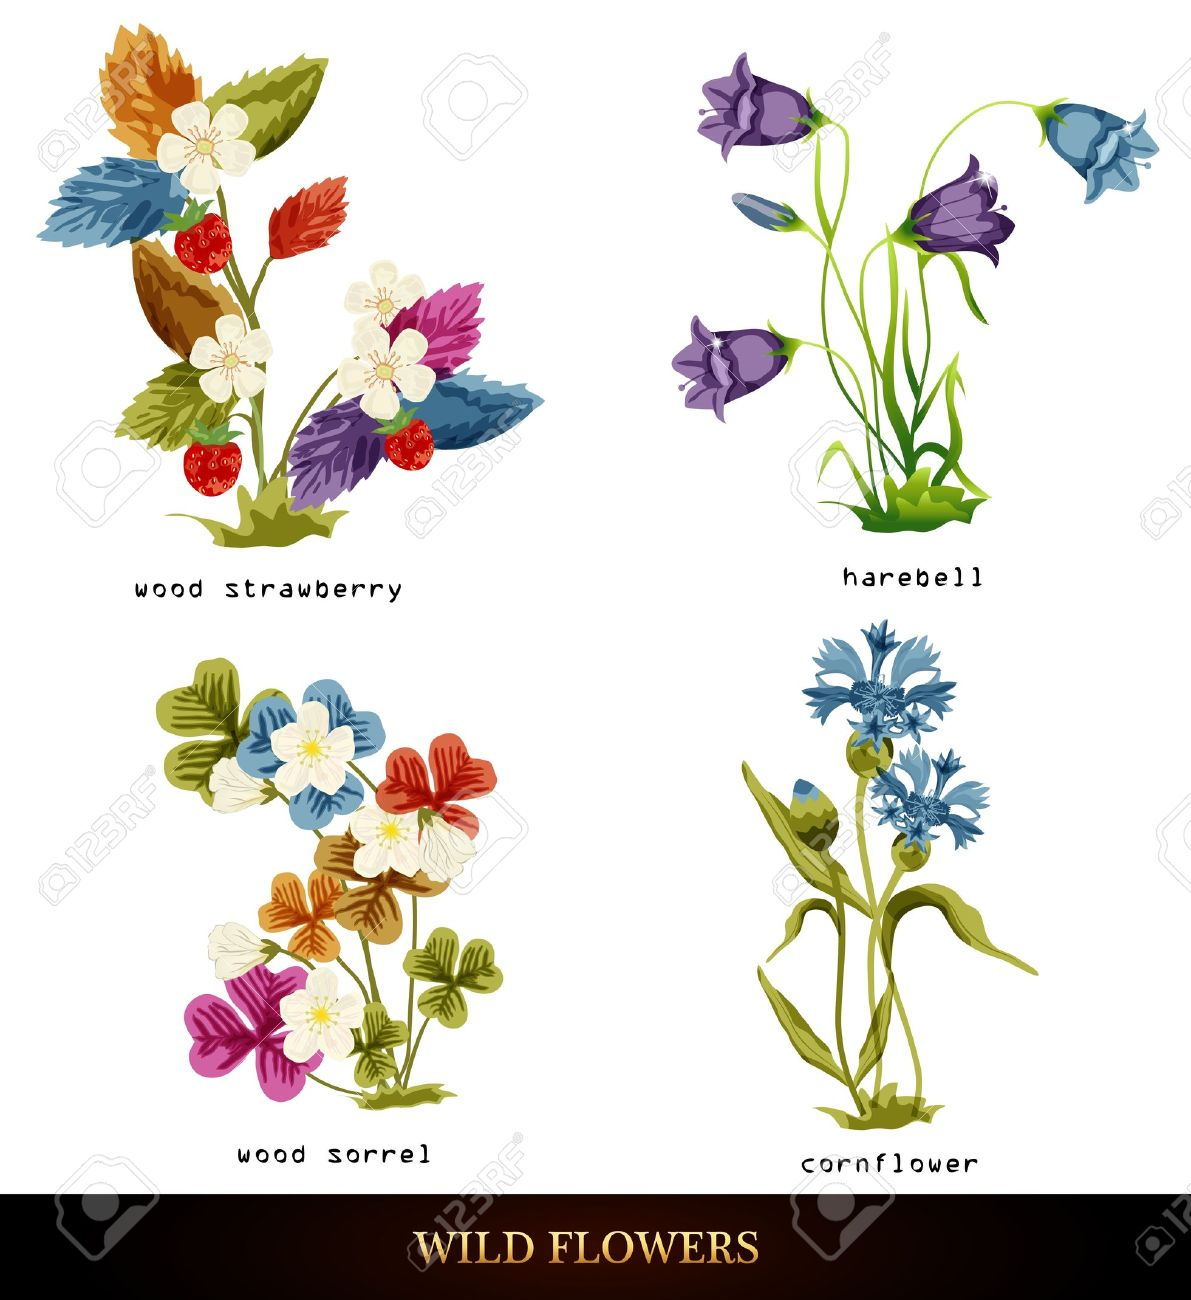 Wood Strawberry, Cornflower, Harebell, Wood Sorrel. Royalty Free.